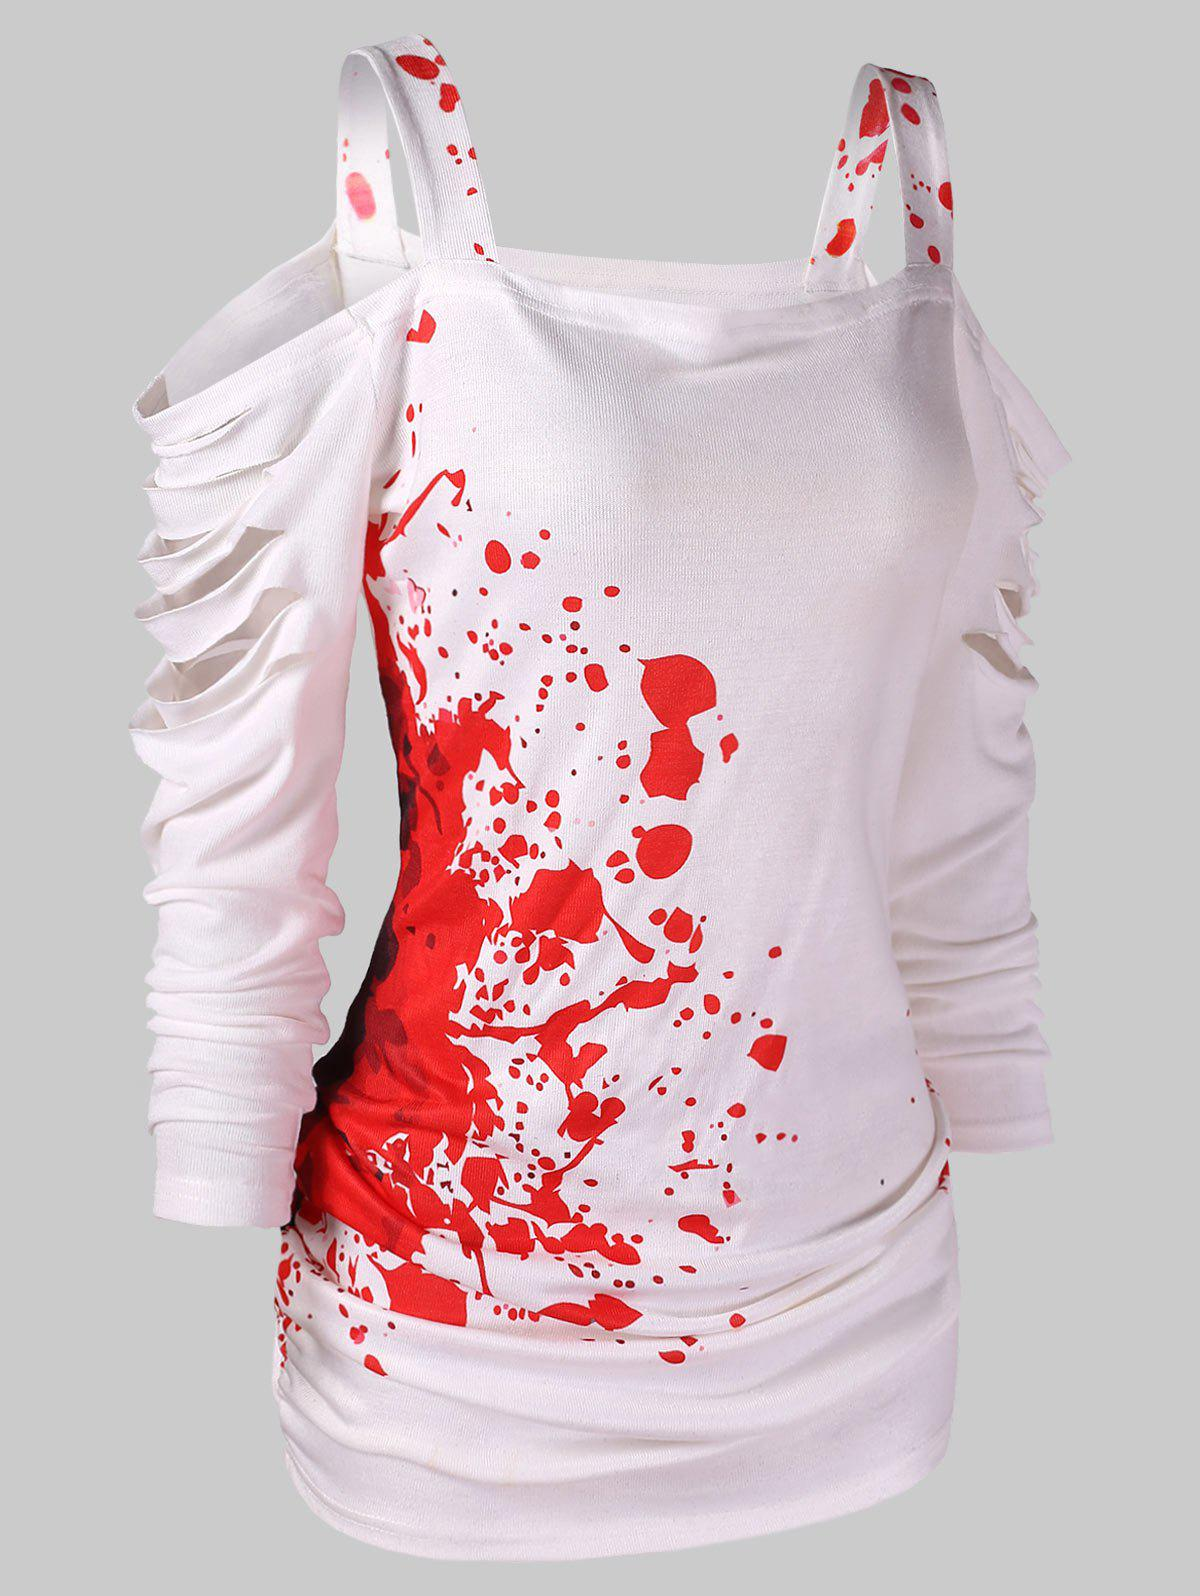 https://www.rosegal.com/t-shirts/halloween-cold-shoulder-blood-splatter-t-shirt-2373773.html?lkid=16123114